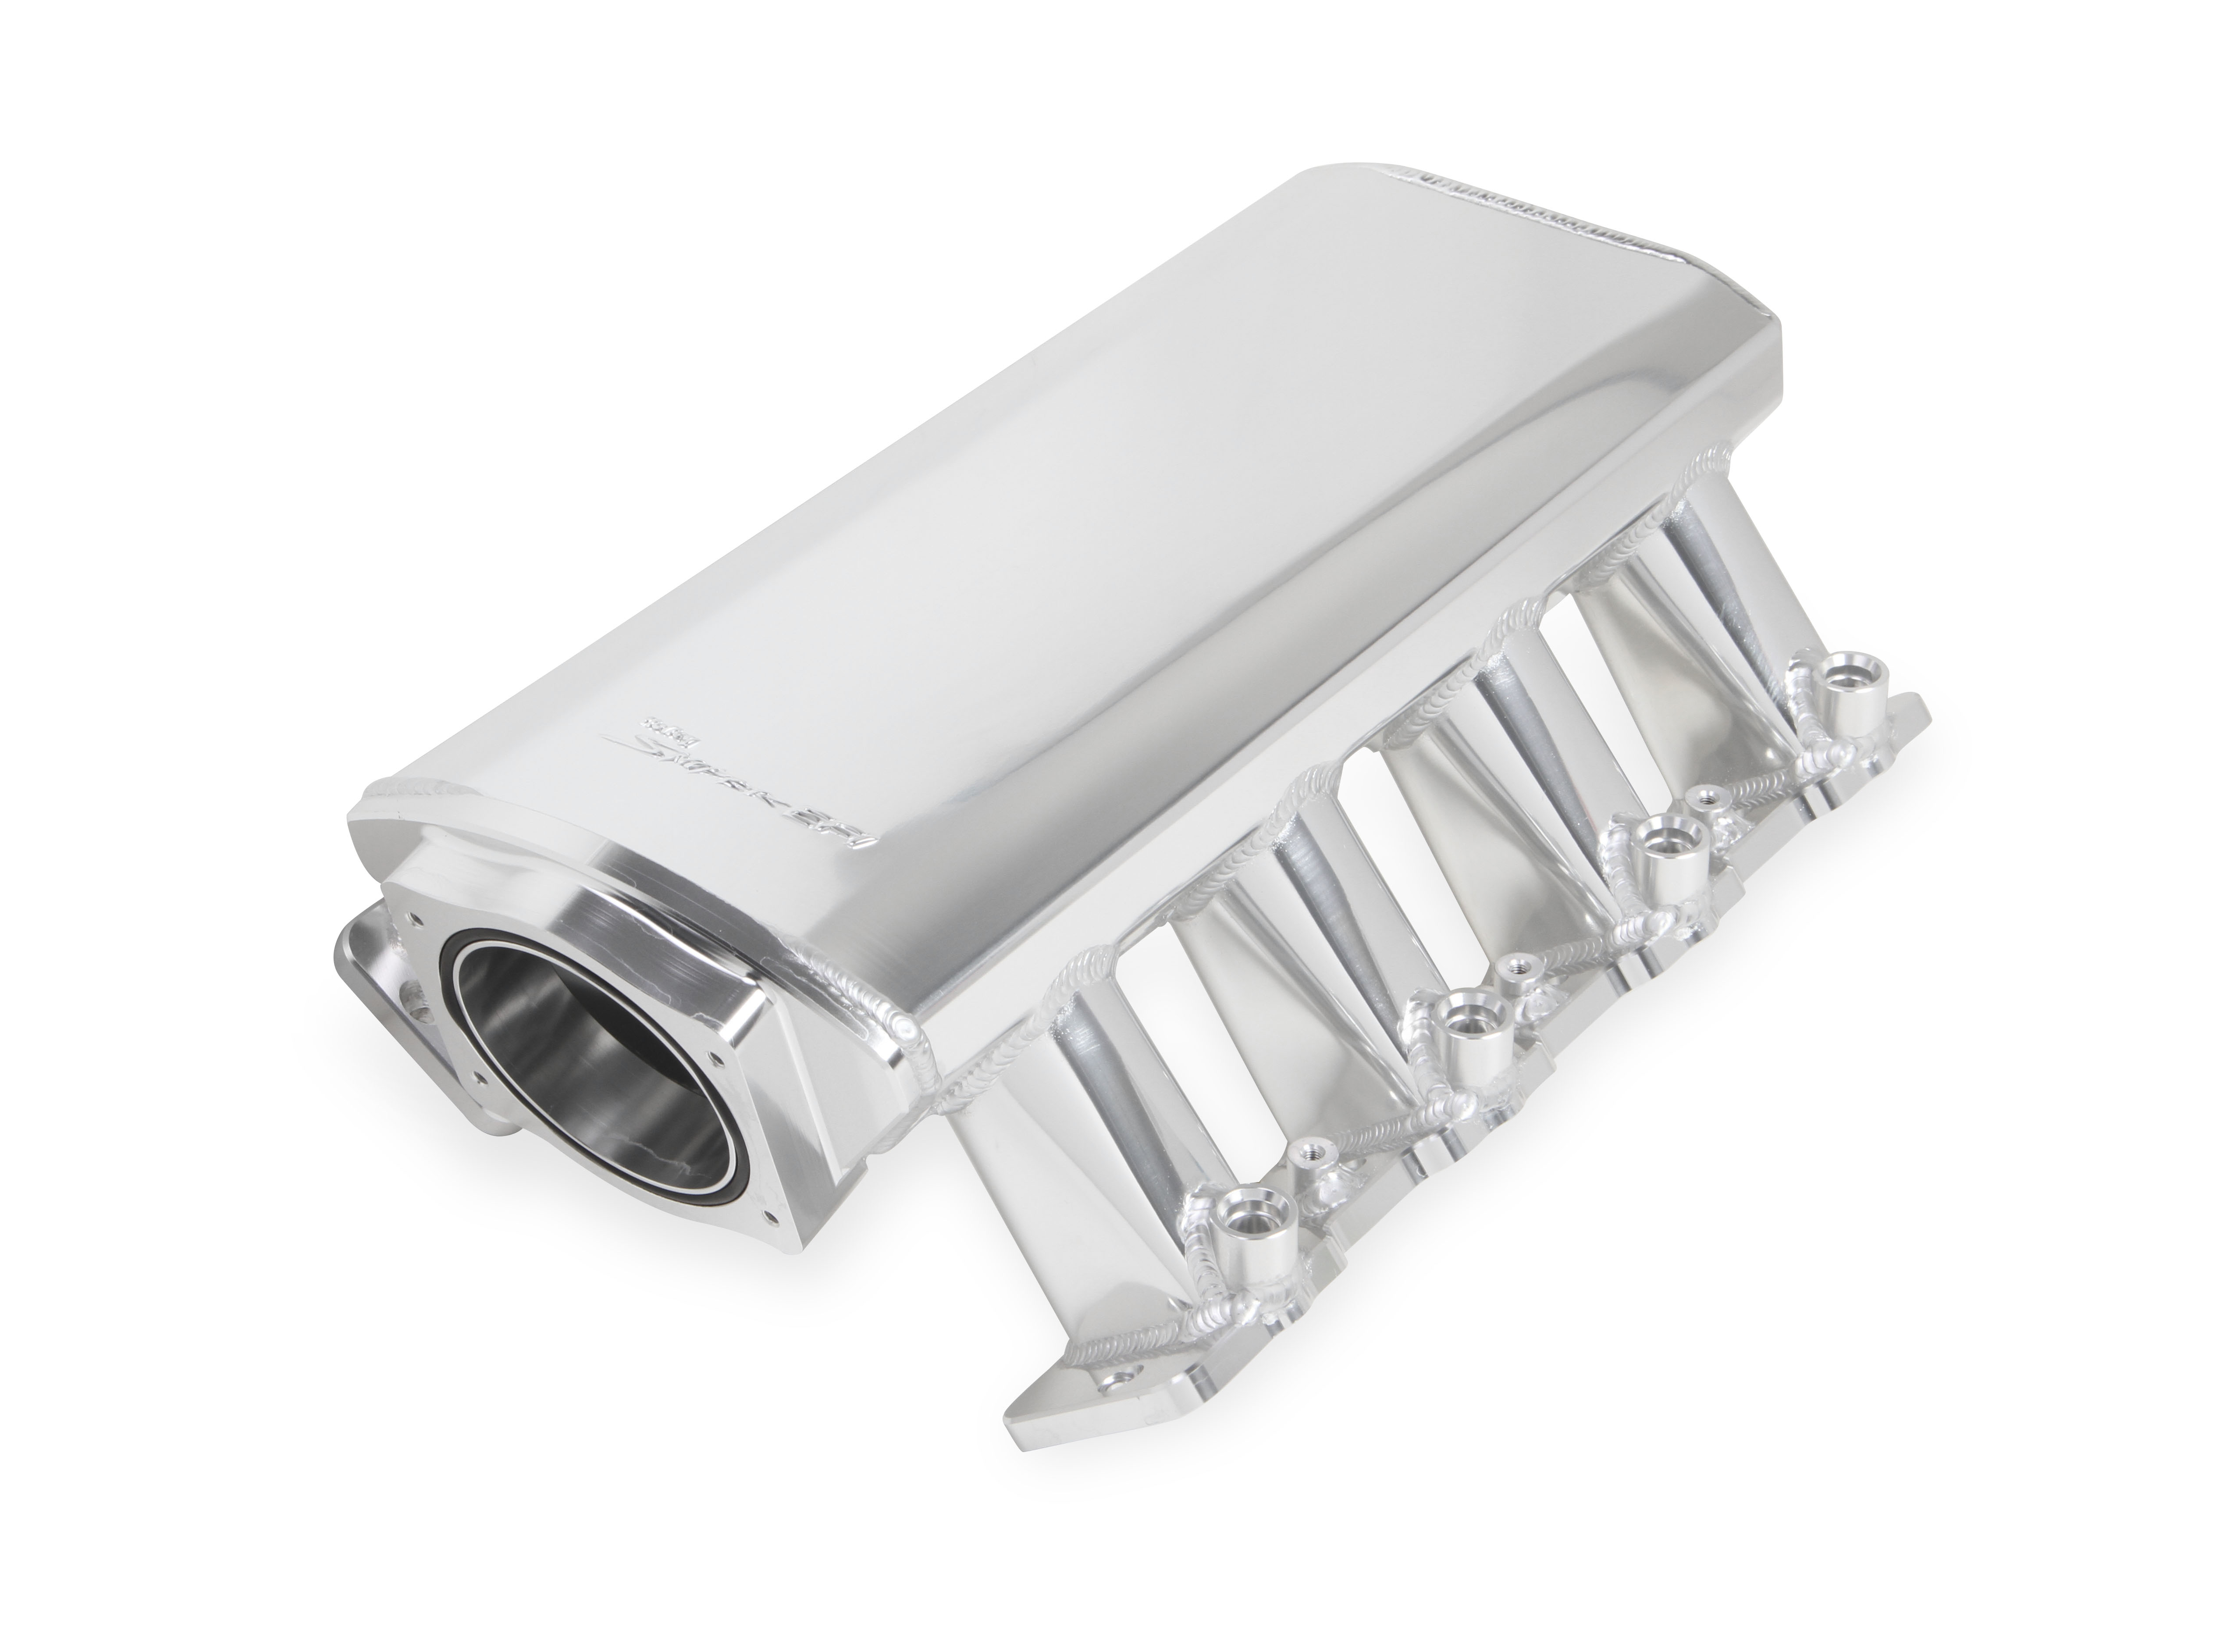 LS7 Holley Sniper EFI Fabricated Intake - 102mm TB w/Fuel Rail Kit in Silver Finish